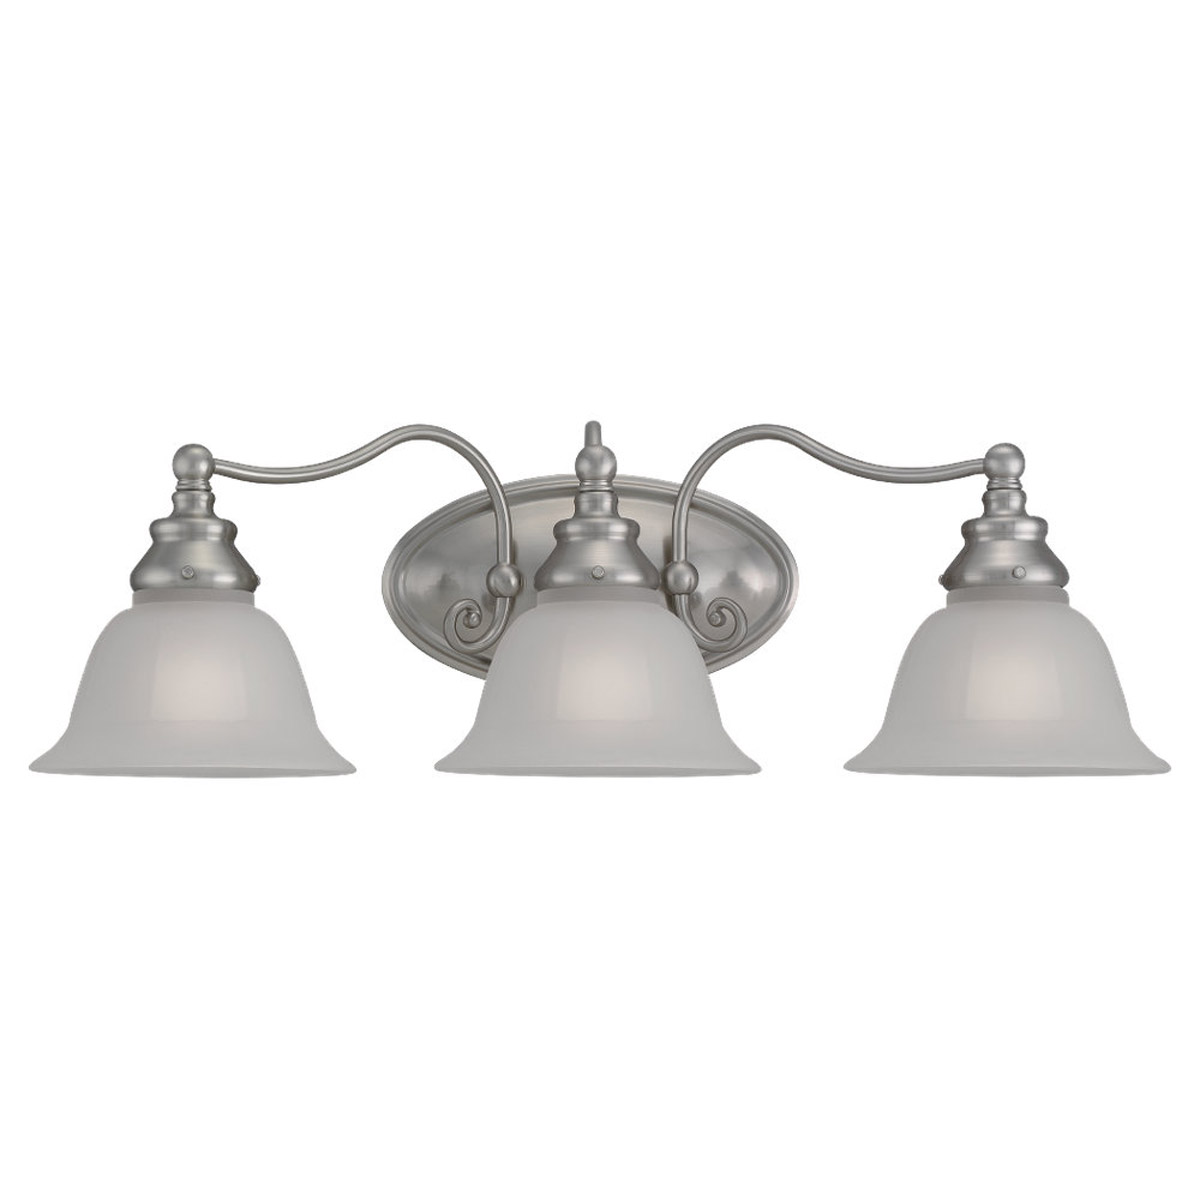 Sea Gull Lighting Canterbury 3 Light Bath Vanity in Brushed Nickel 44652-962